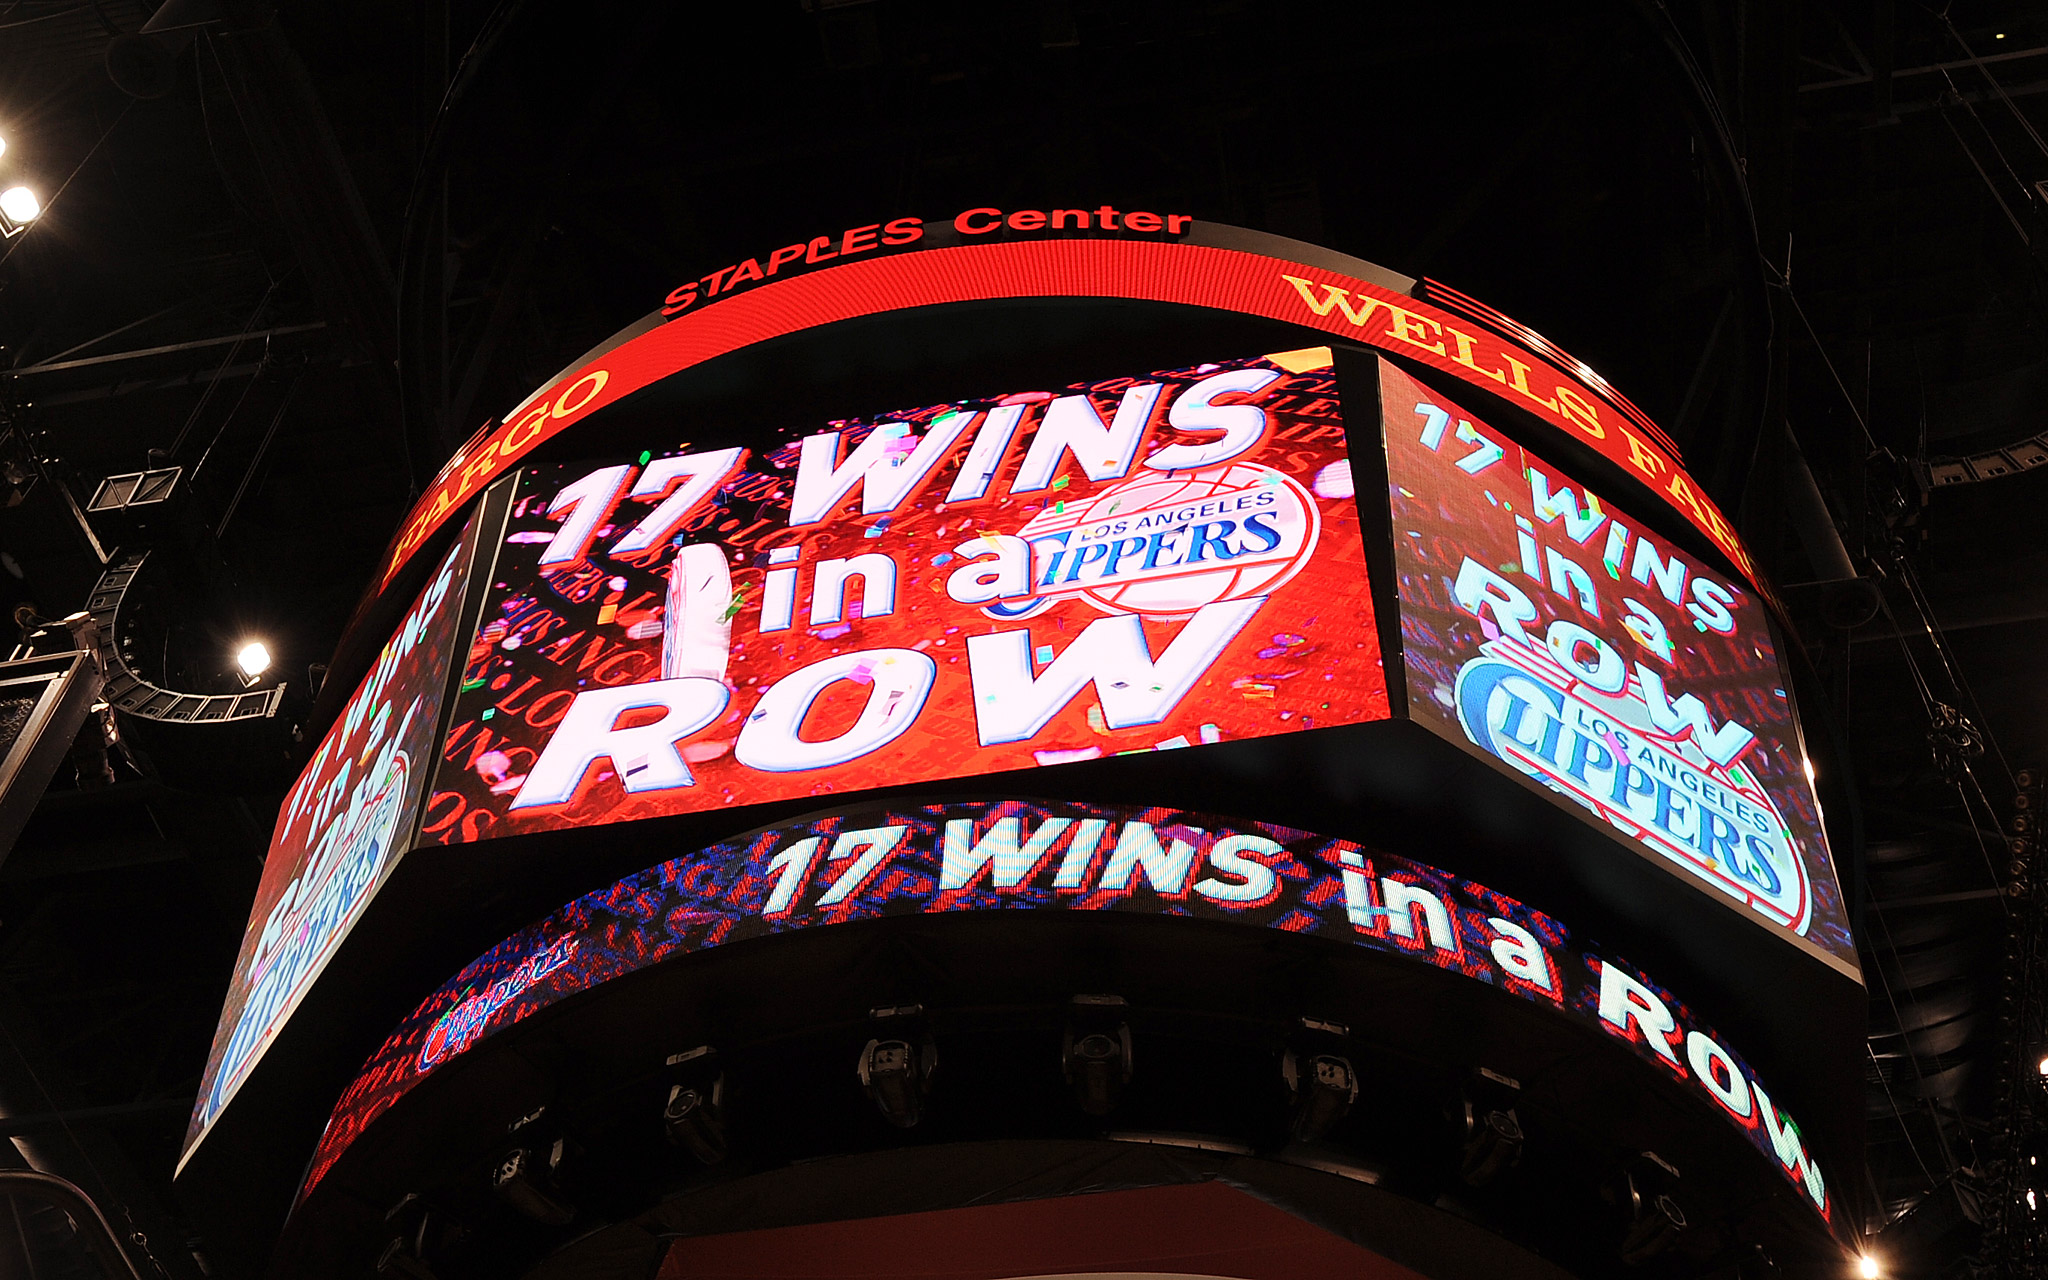 Clippers Jumbotron